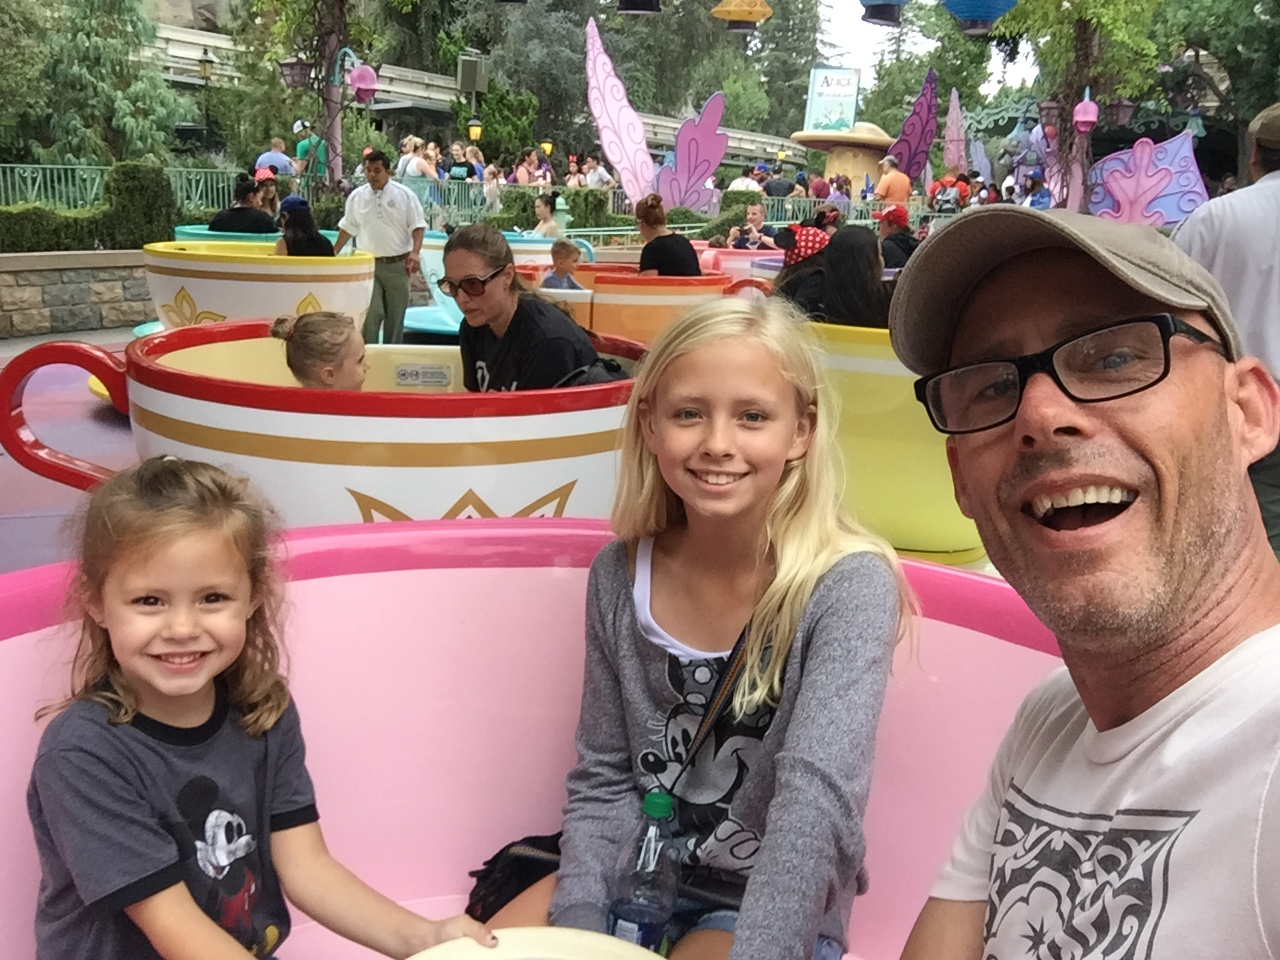 Recent trip to Disneyland on the tea cups (ironic?)